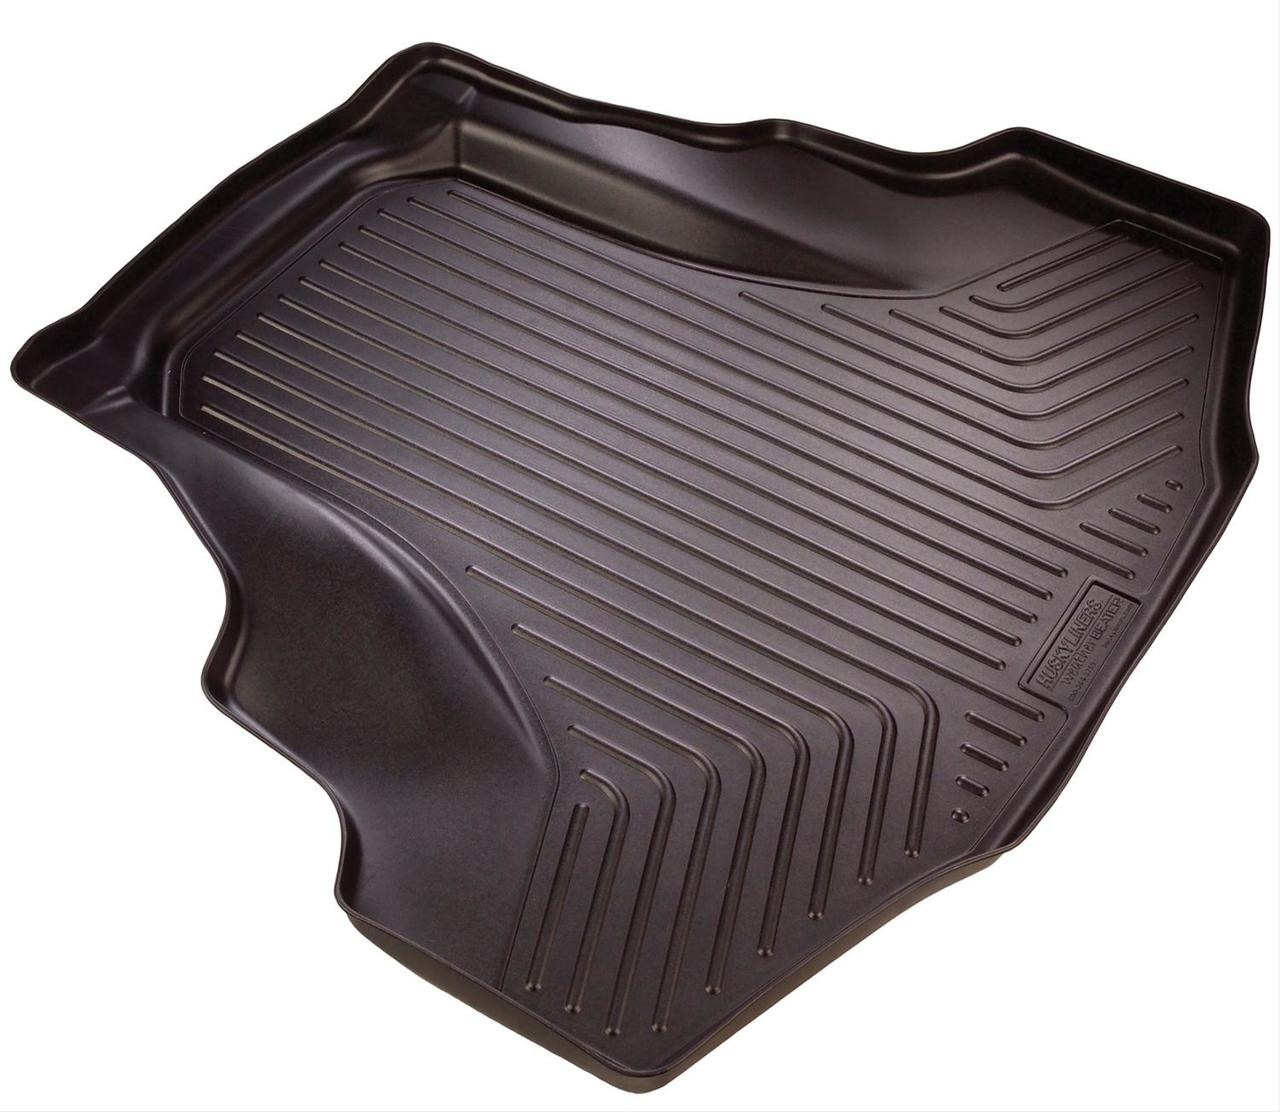 08-12 ACCORD REAR CARGO WEATHERBEATER TRUNK LINER BLACK